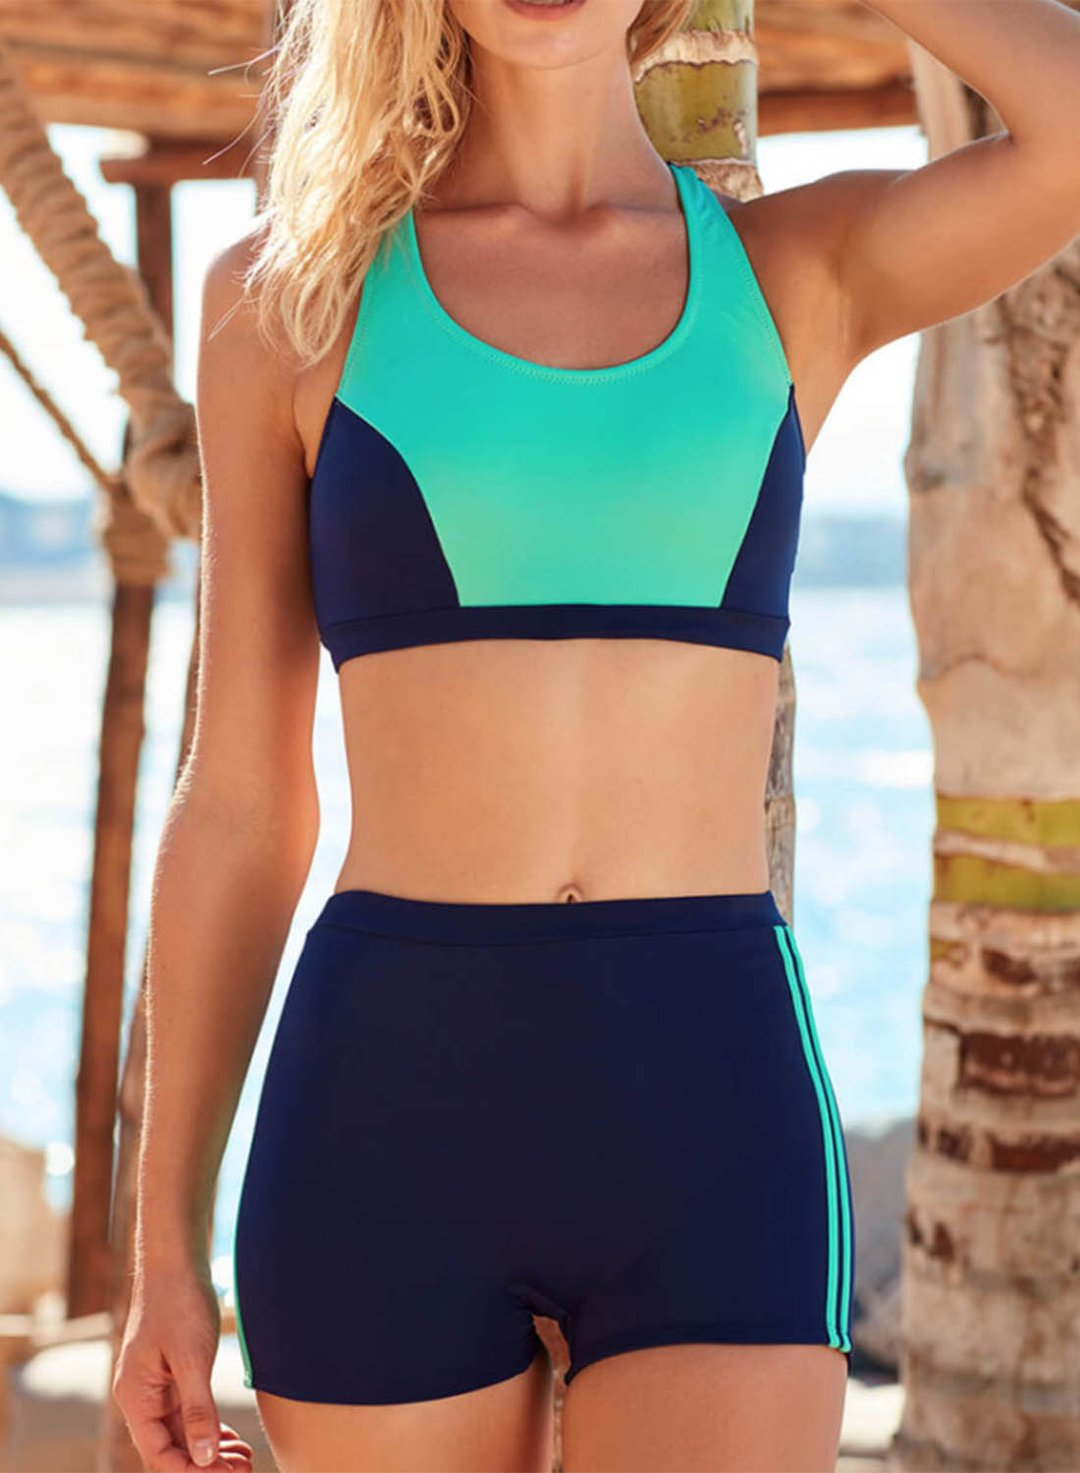 Green Women's Bikinis Color Block Mid Waist Sleeveless U Neck Padded Unadjustable Wire-free Beach Casual Bikini Suit LC431017-9